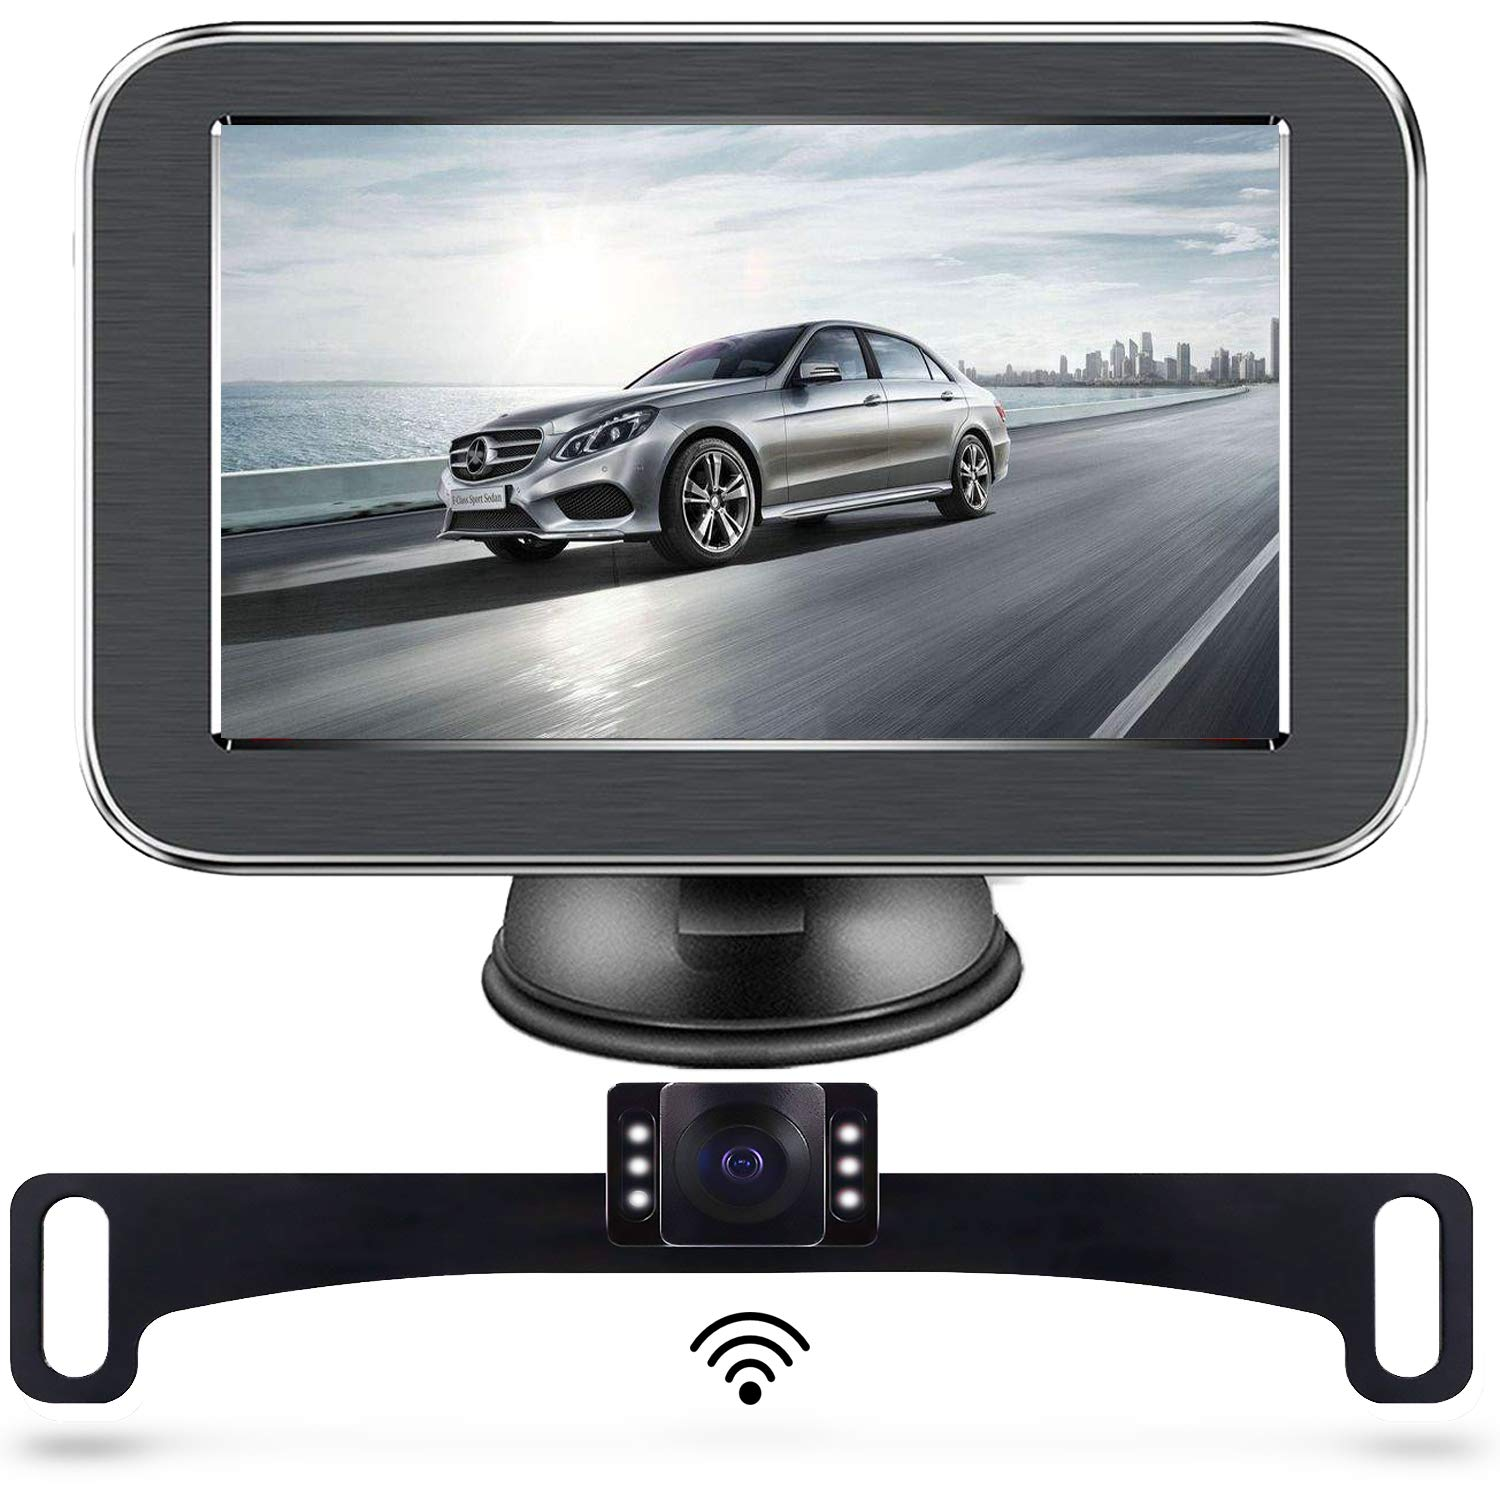 Lastbus Five-Inch - Best Wireless Backup Cameras - Best Wireless Backup Cameras